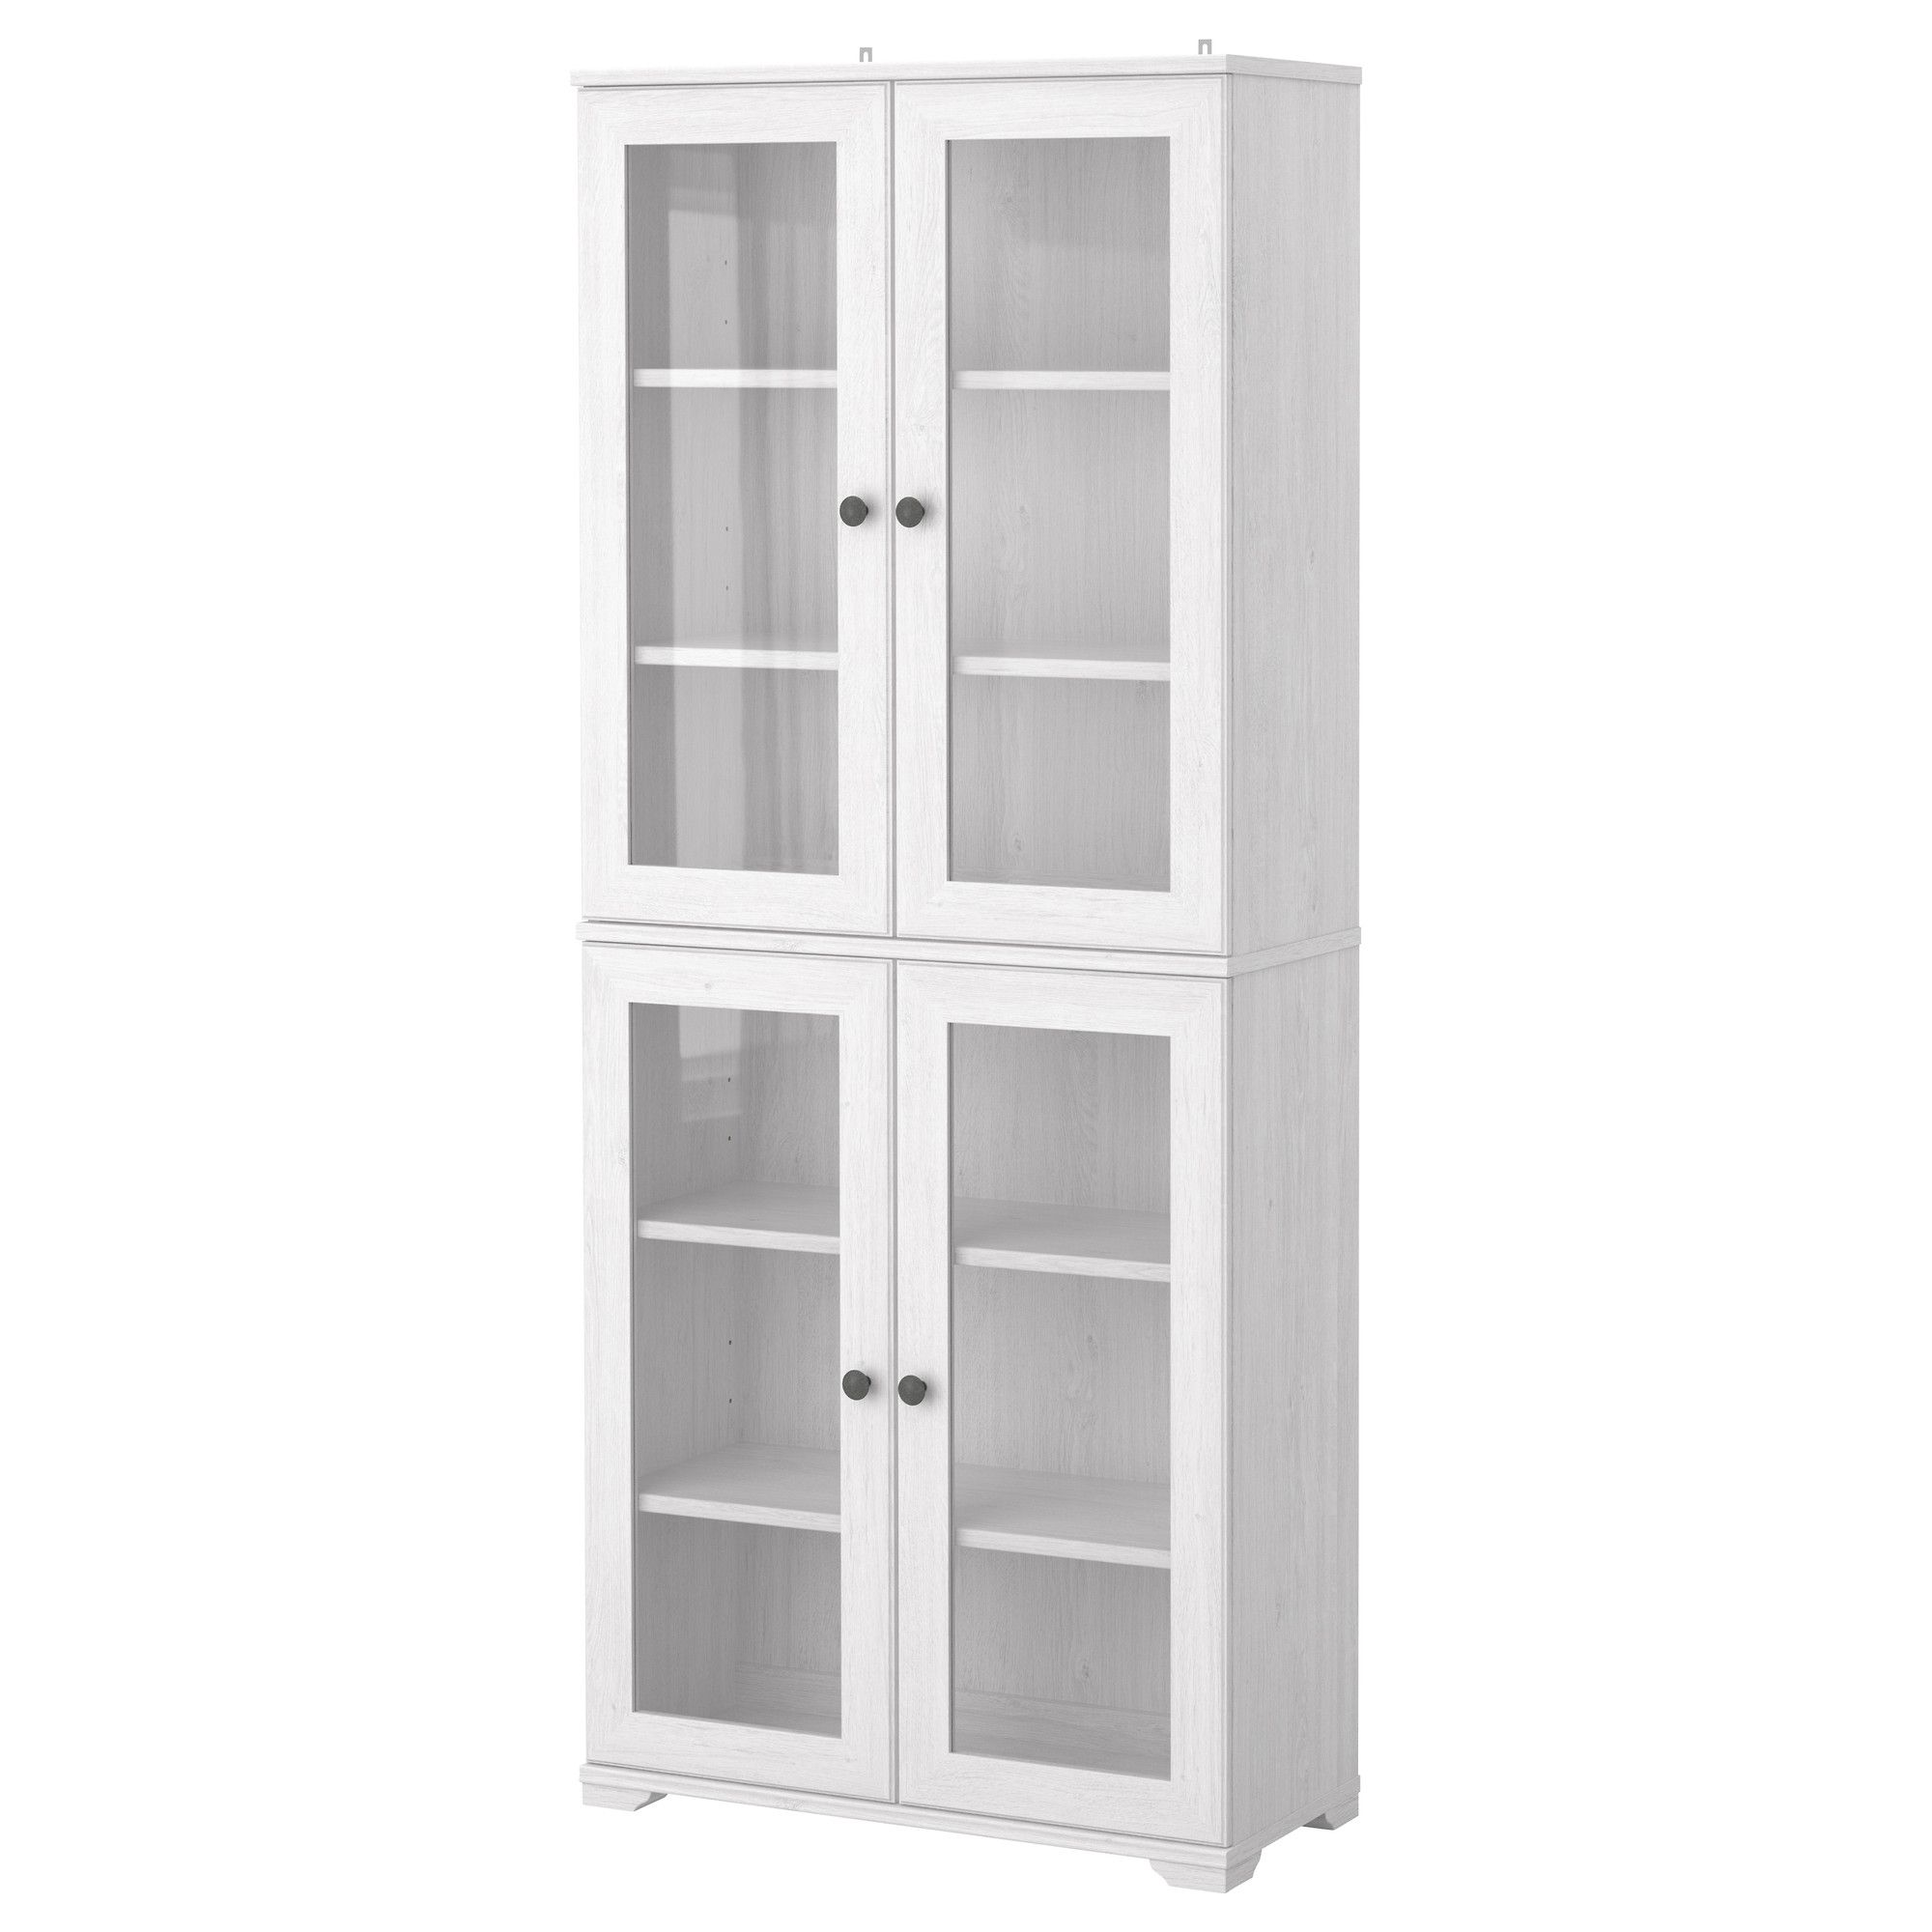 Ikea bookcase with glass doors  BORGSJÖ Vitriinikaappi  IKEA  Home Inspiration  Pinterest  Glass